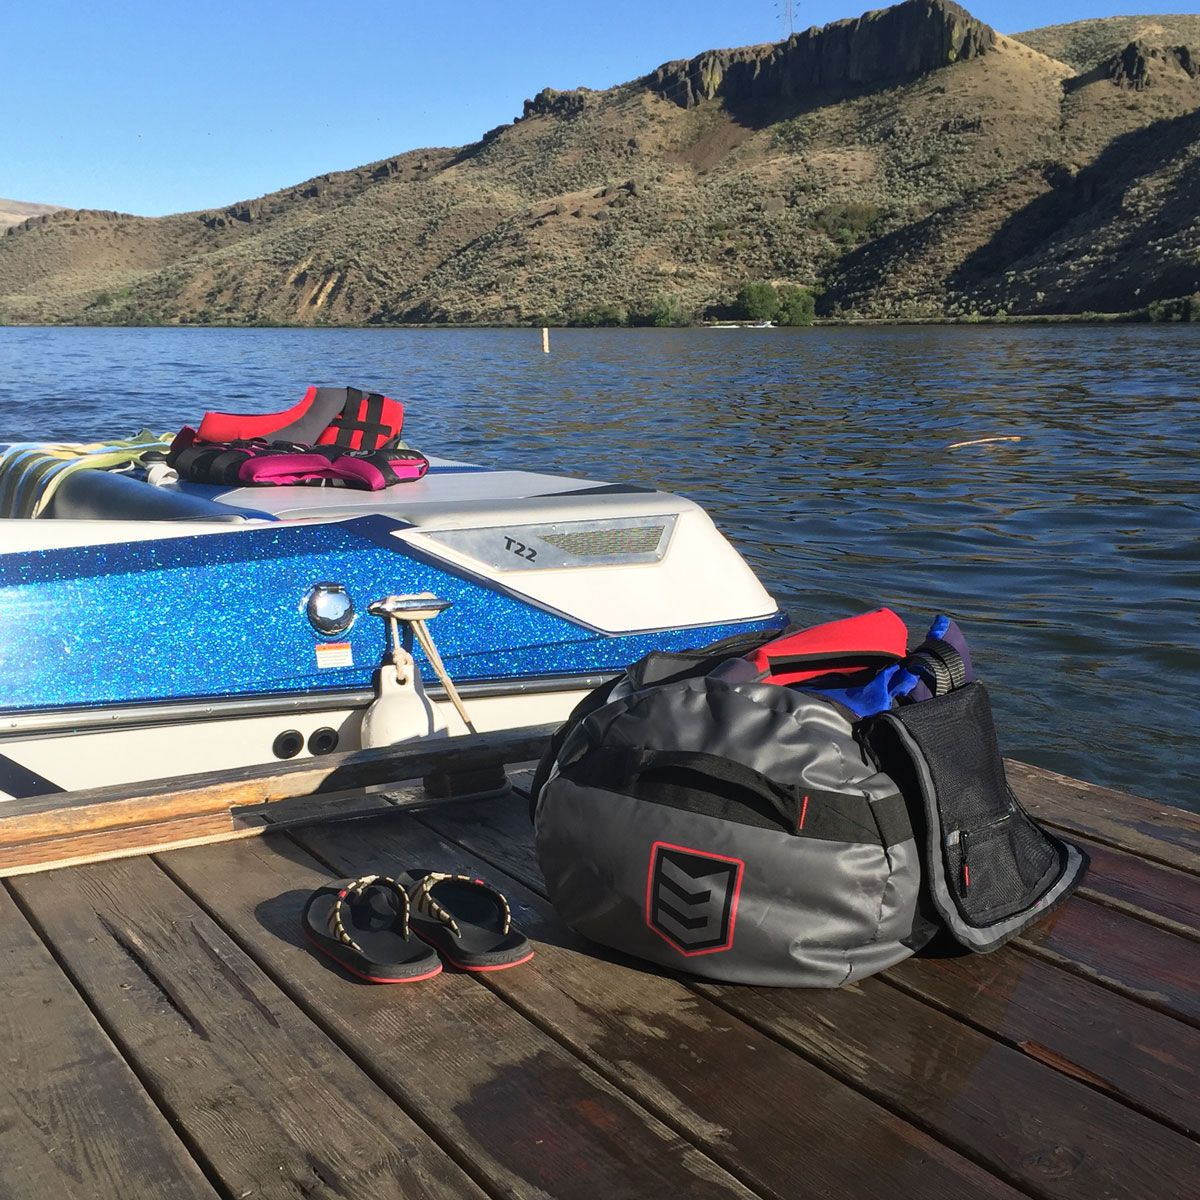 Ready to go boating thanks to the 3V Gear Smuggler Adventure Duffel